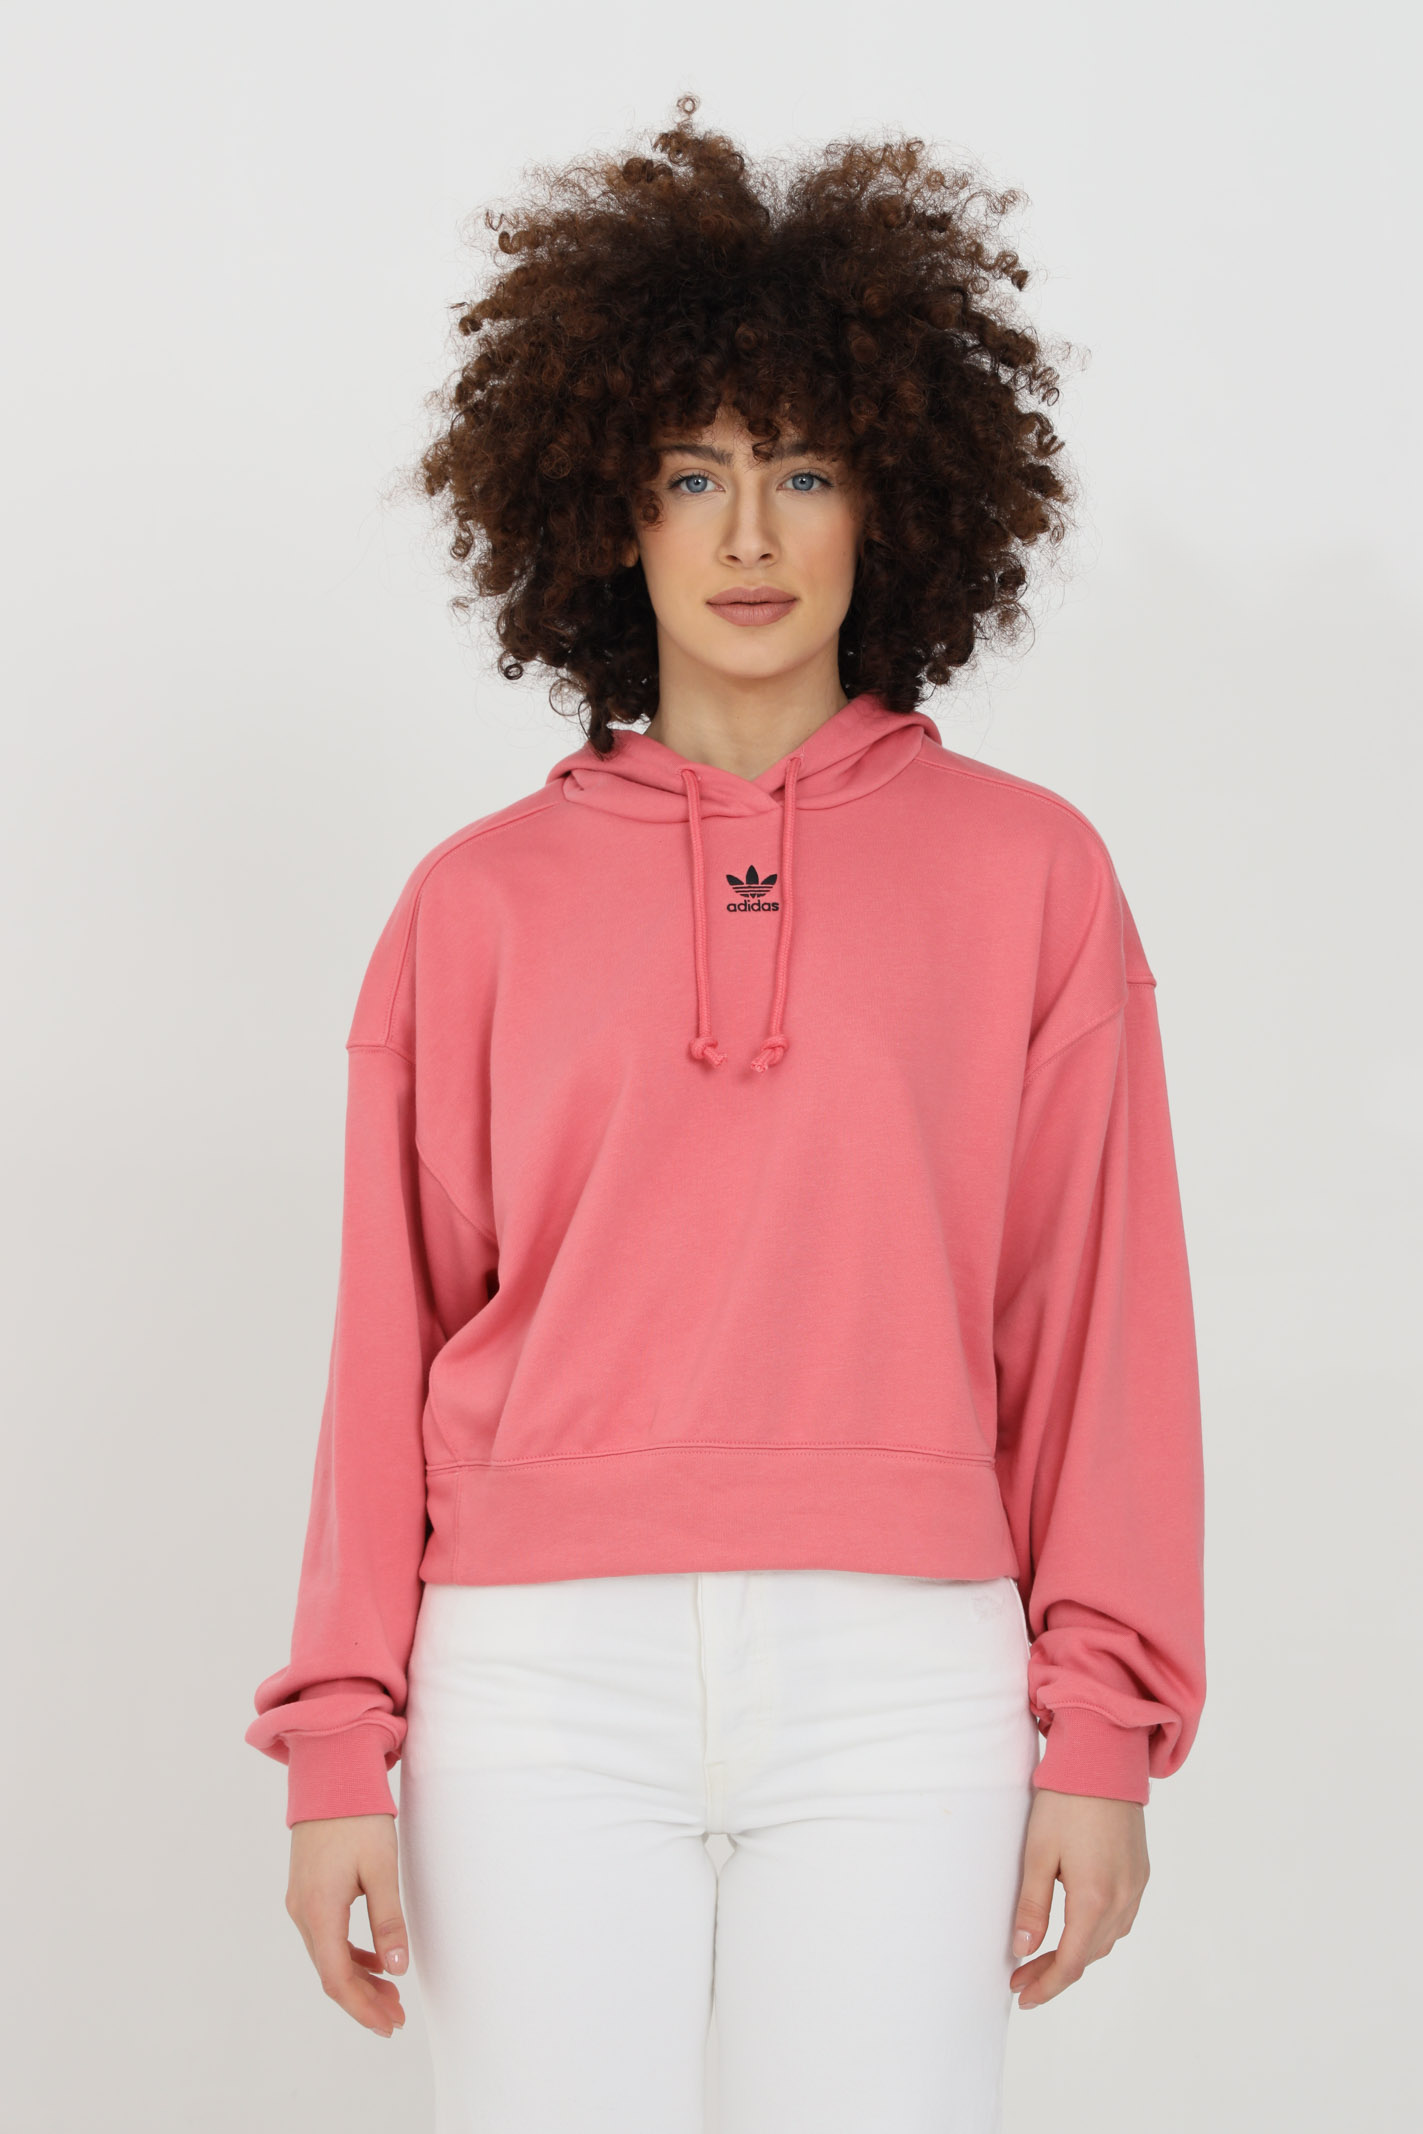 Hoodie loungewear essentials ADIDAS | Sweatshirt | H13875.